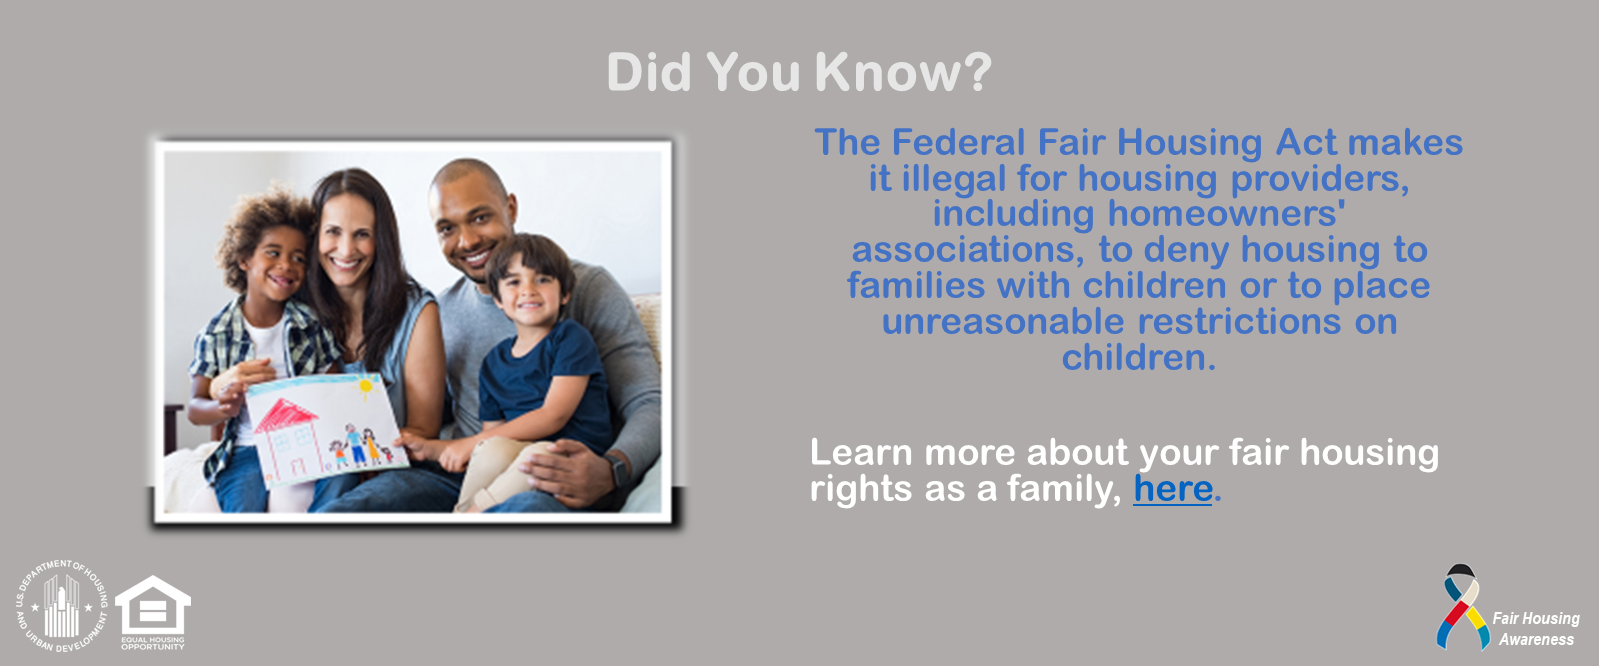 [The Federal Fair Housing Act makes it illegal for housing providers, including homeowners' associations, to deny housing to families with children or to place unreasonable restrictions on children.]. HUD photo